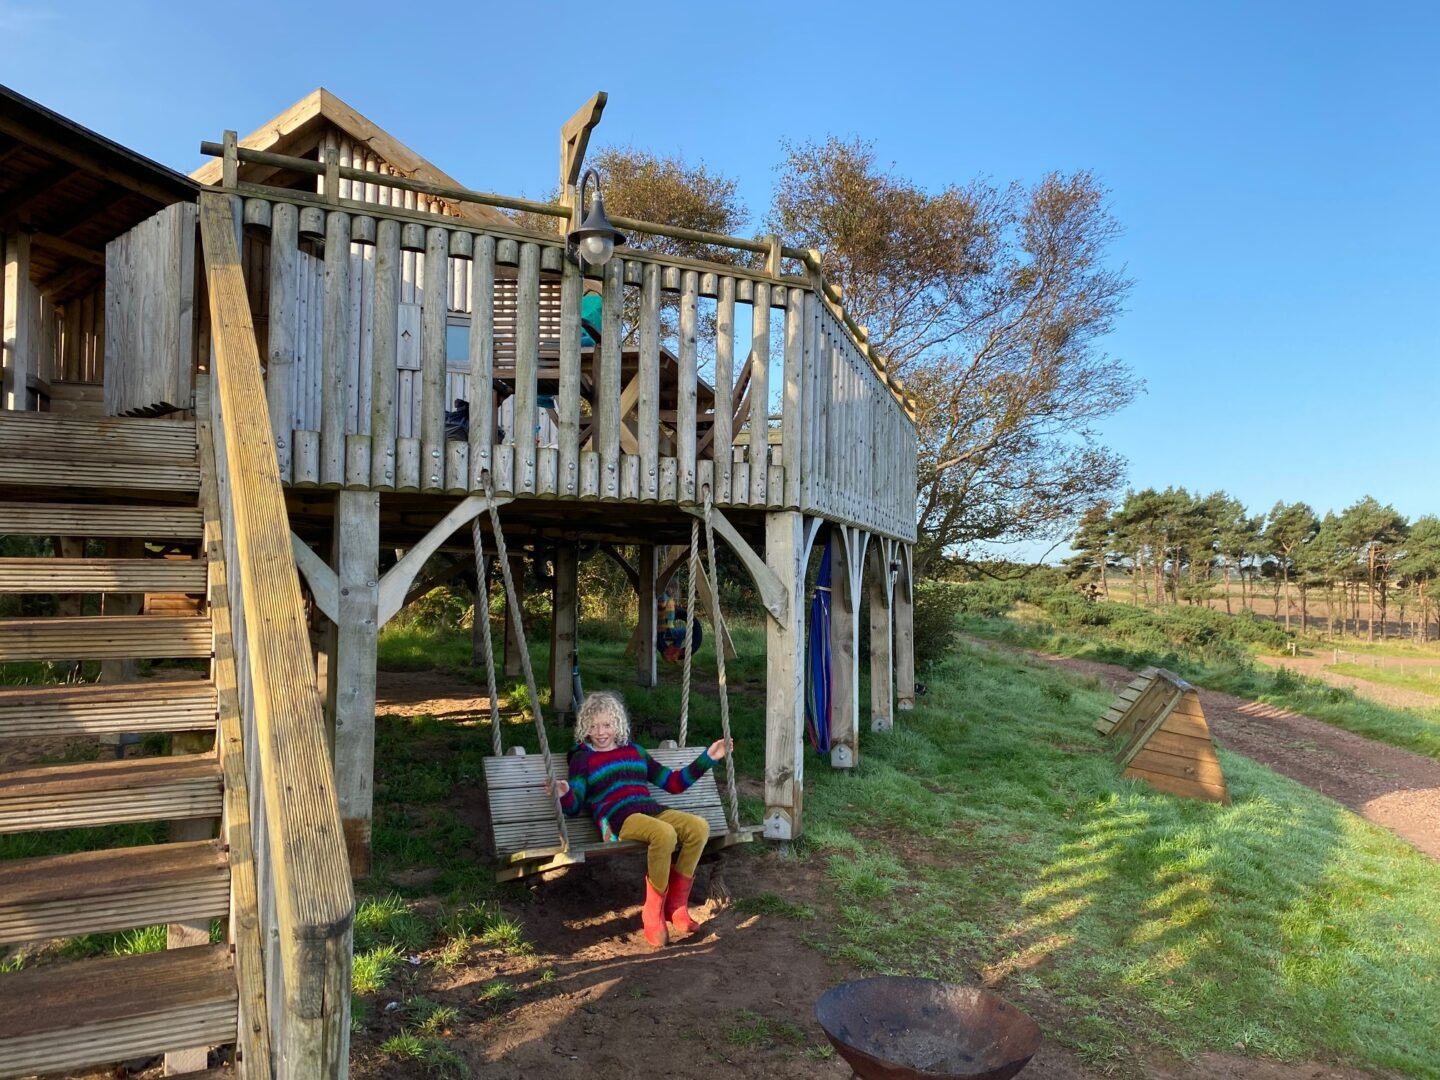 child on swing seat under a wooden treehouse building